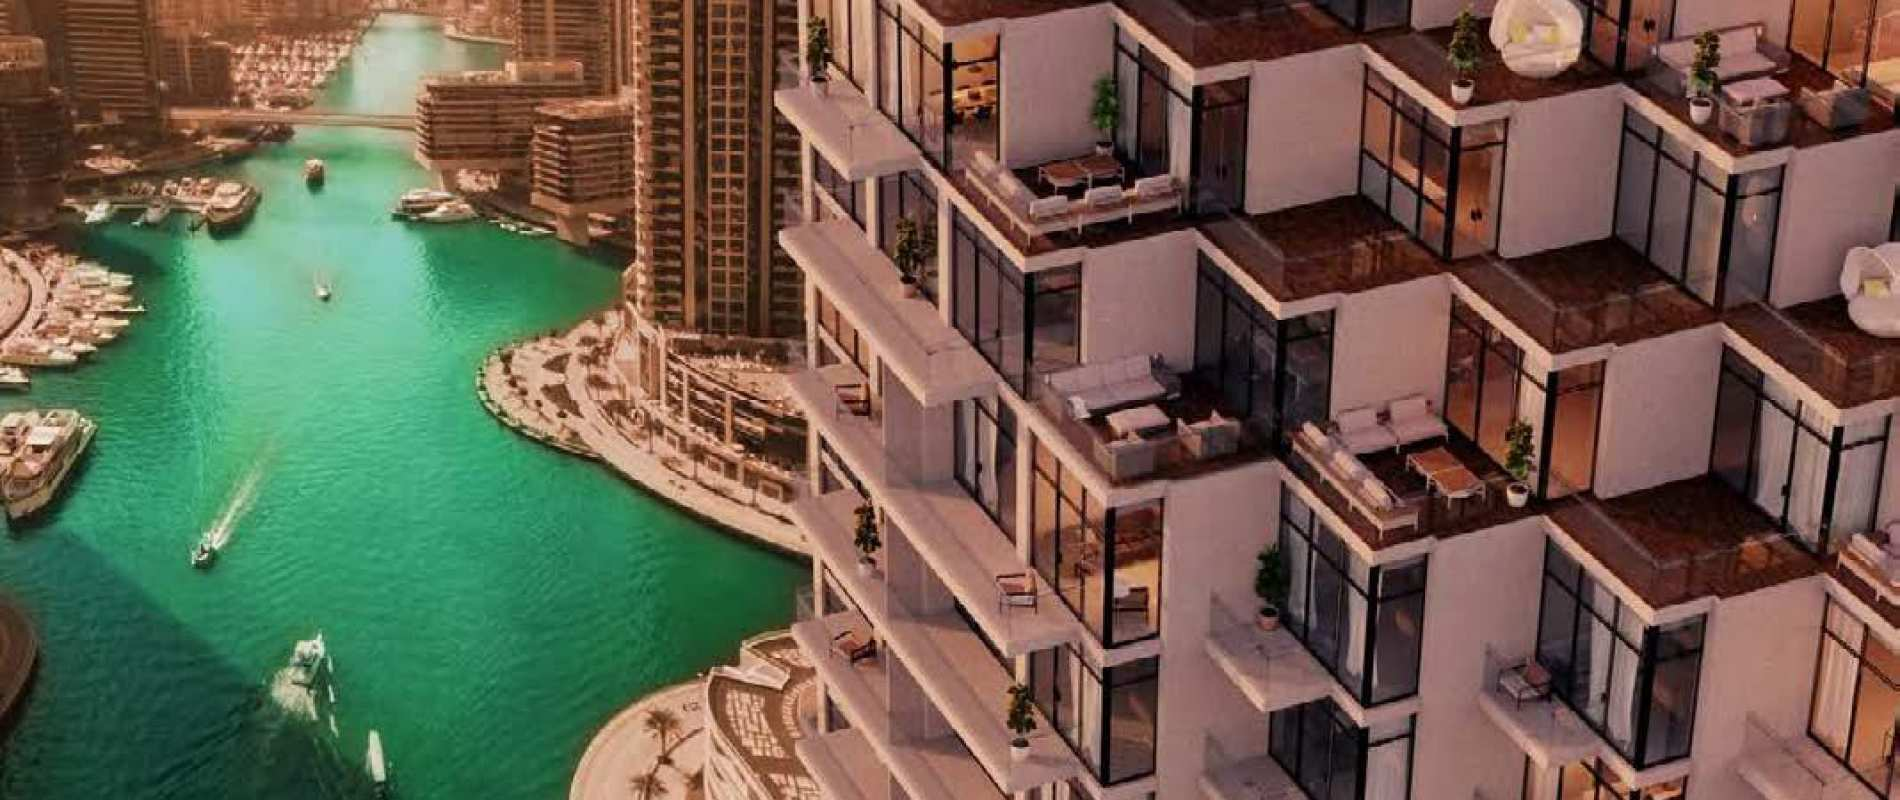 Luxury Property Dubai 3 Bedroom Apartment for sale in LIV Residence  Dubai Marina